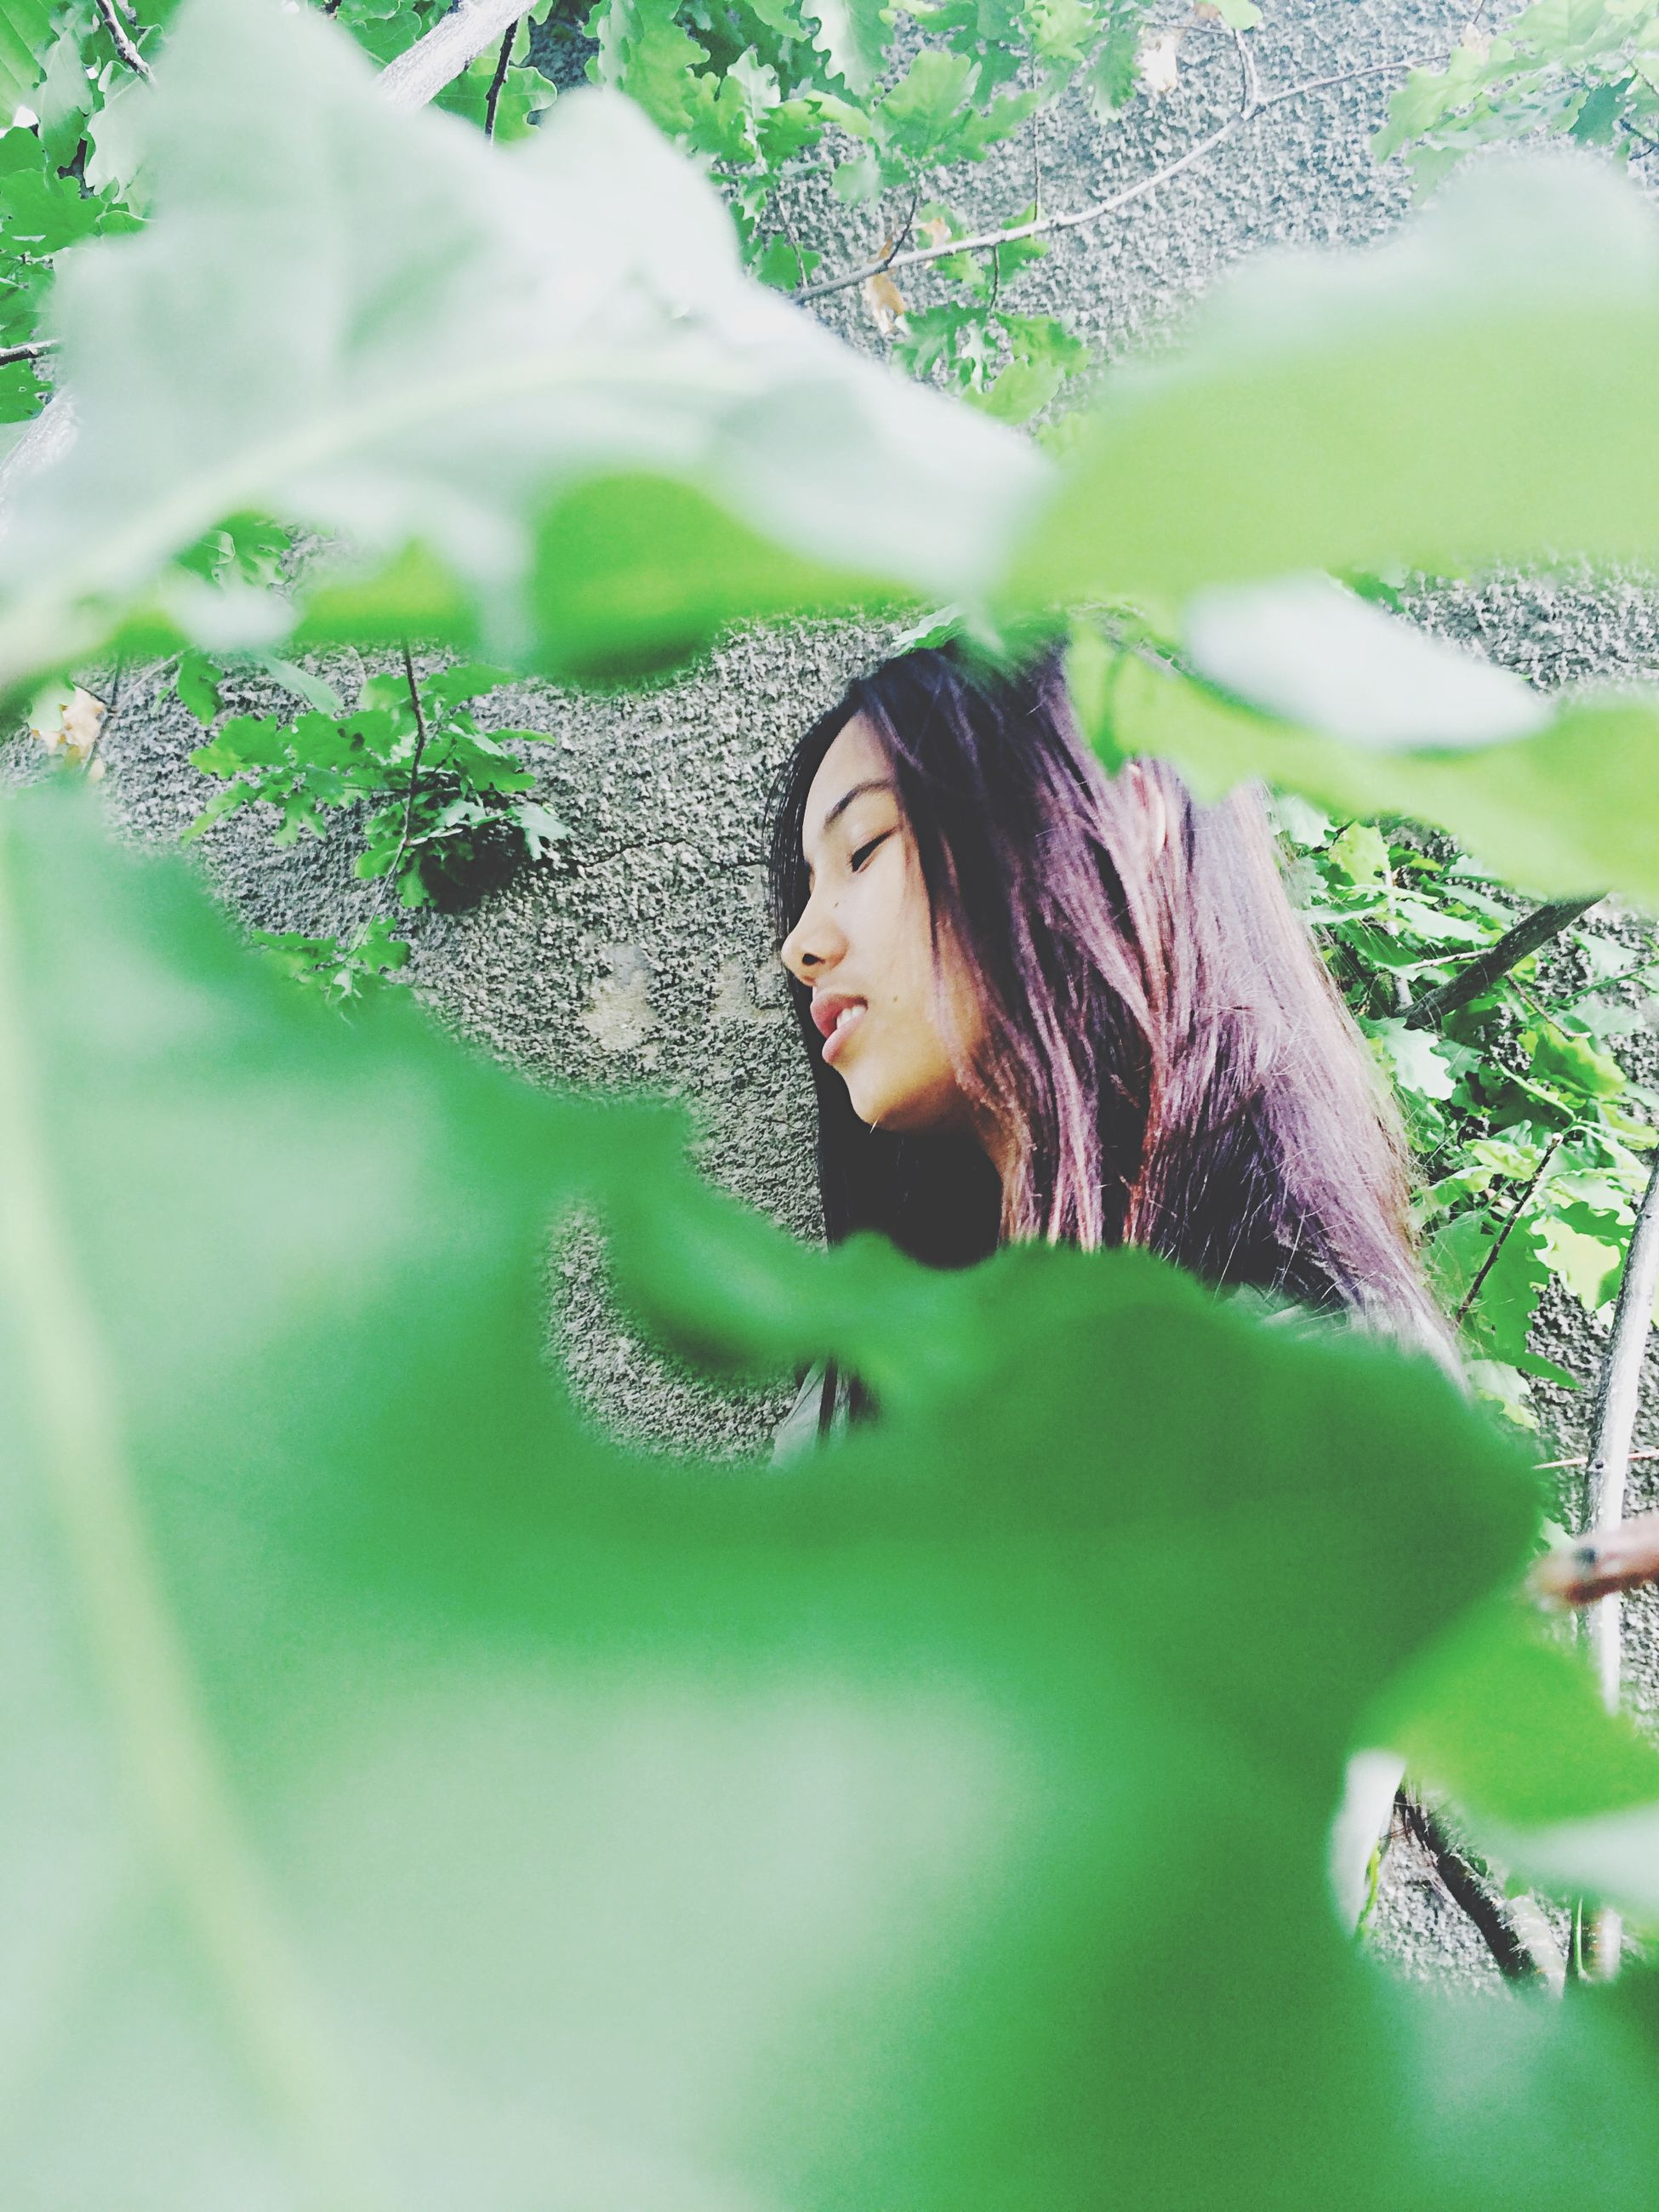 young adult, portrait, young women, looking at camera, person, lifestyles, leisure activity, tree, front view, smiling, plant, long hair, growth, casual clothing, leaf, waist up, green color